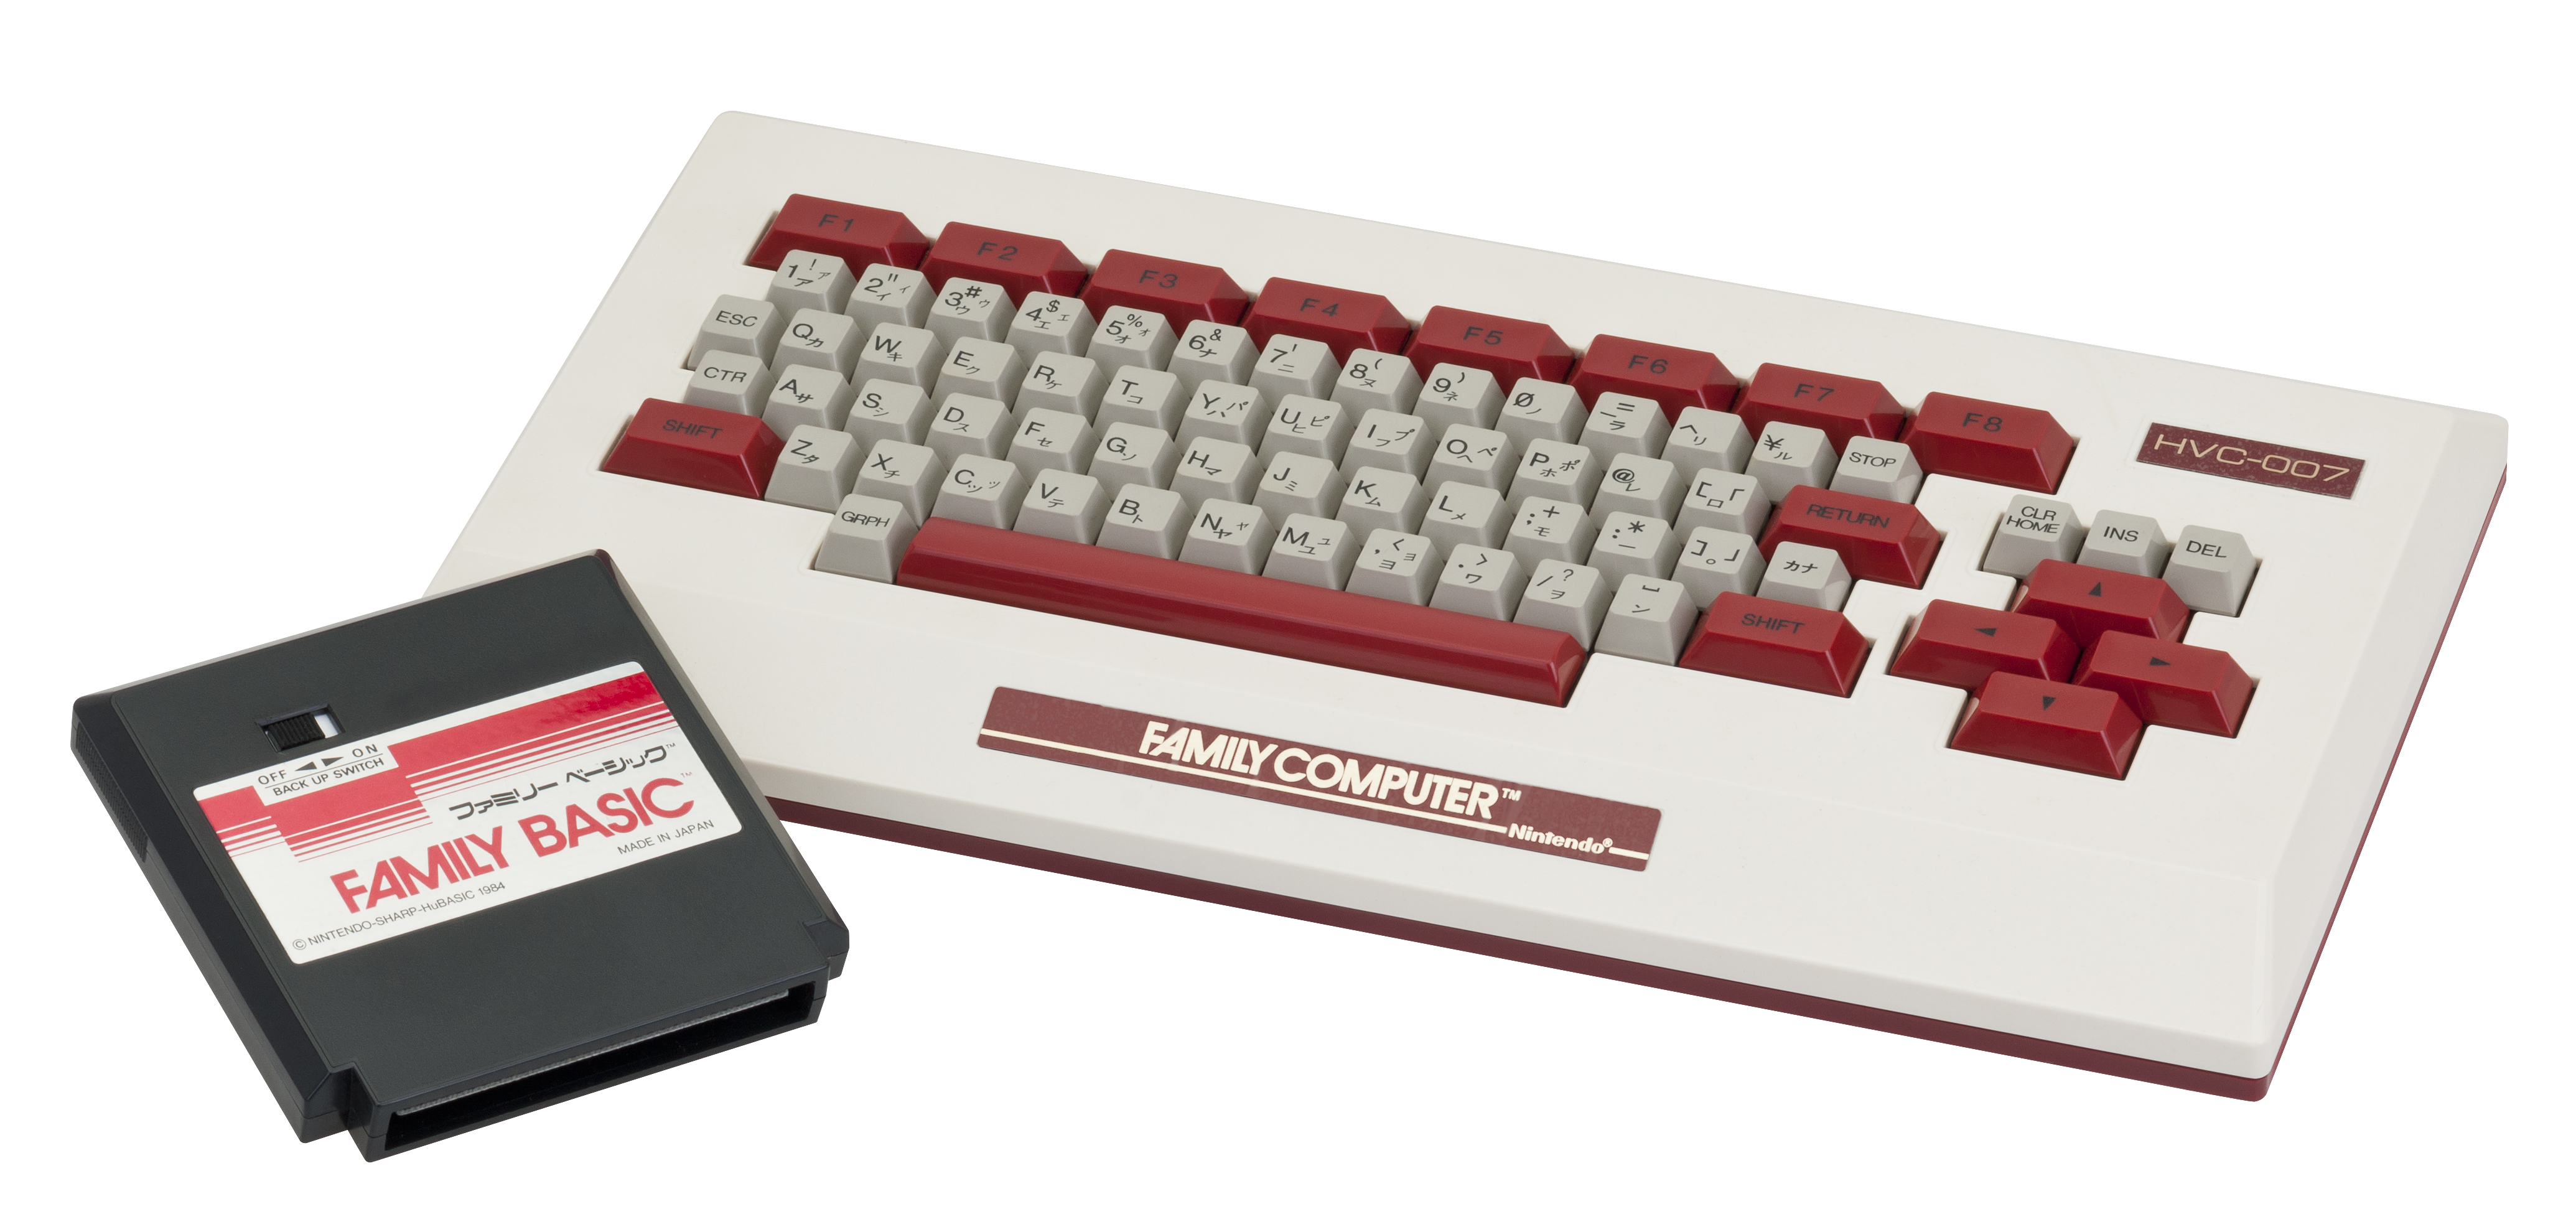 Is there any keycap set similar to the Famicom Family Basic Keyboard ...